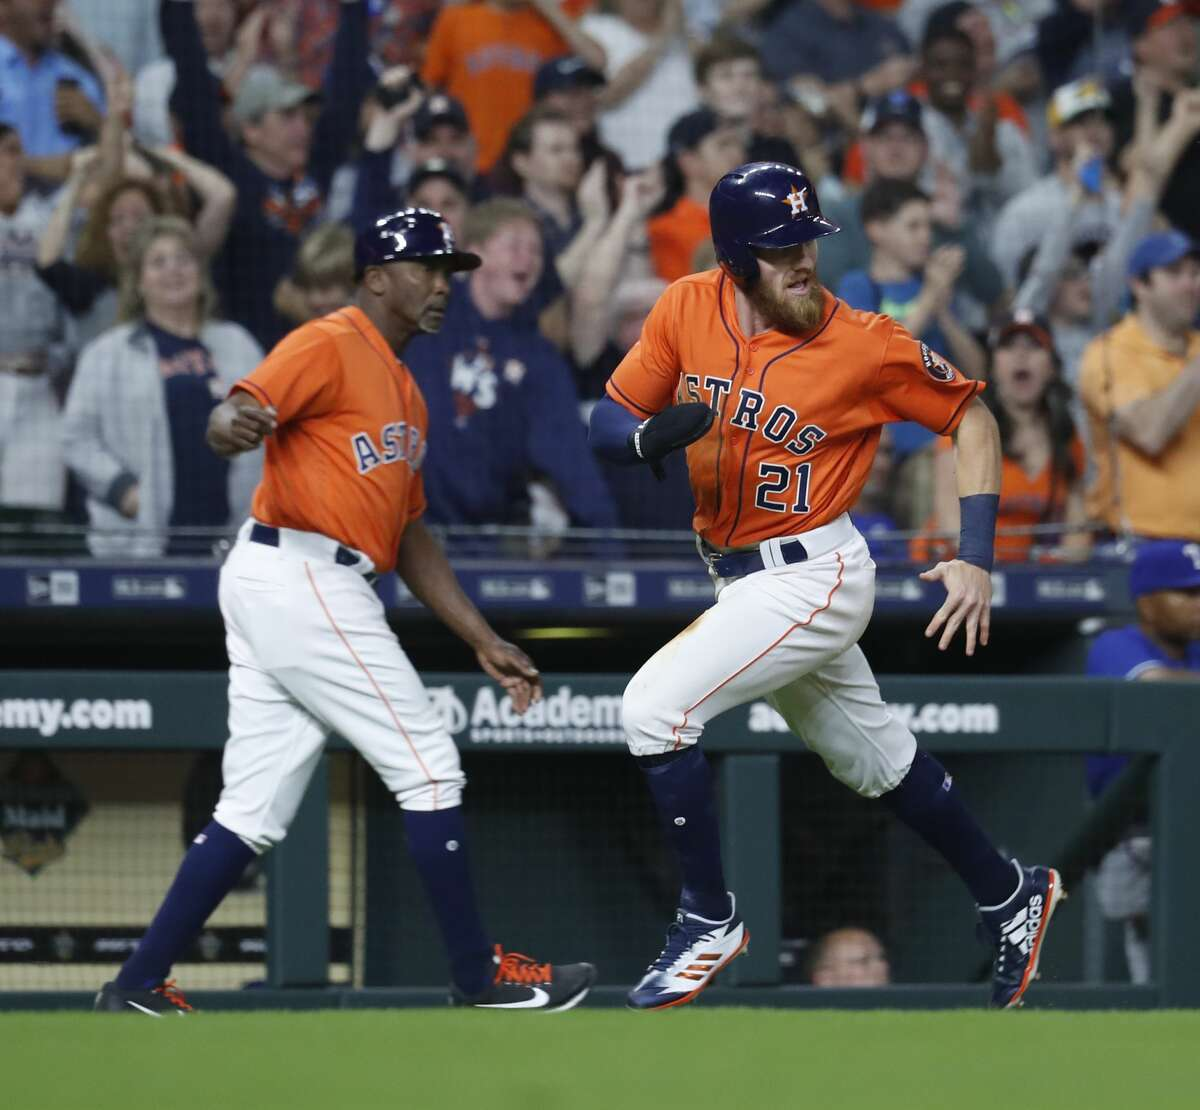 Houston Astros left fielder Derek Fisher (21) rounds third on his way home to score the winning run on a double by Max Stassi of an MLB game at Minute Maid Park, Friday, April 13, 2018, in Houston. ( Karen Warren / Houston Chronicle )